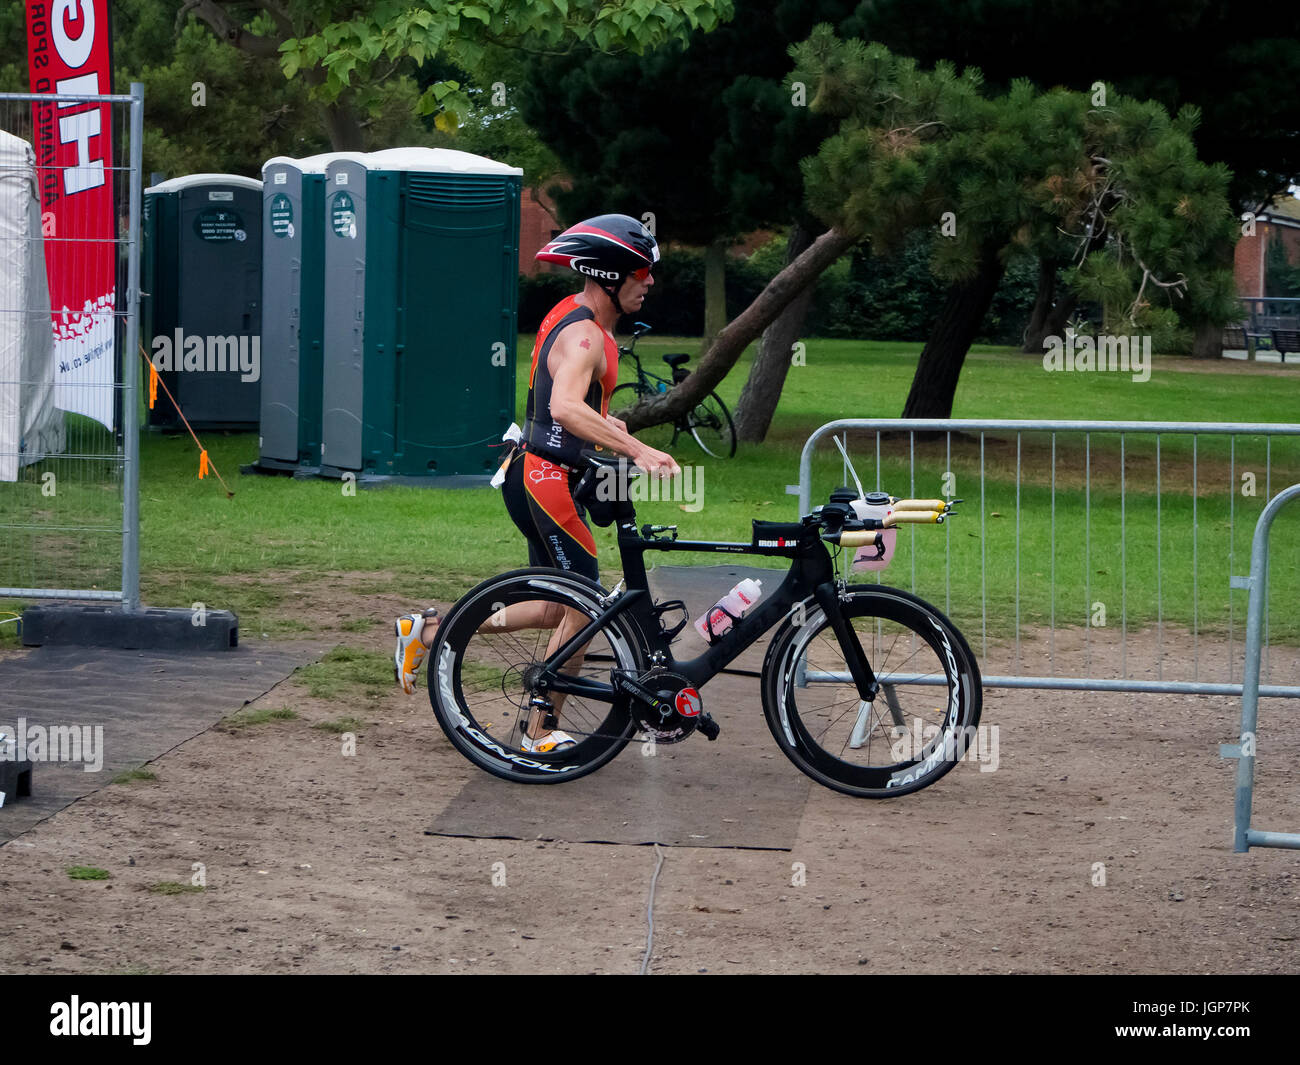 A triathlete runs with his bicycle during the transition phase of a triathlon - Stock Image